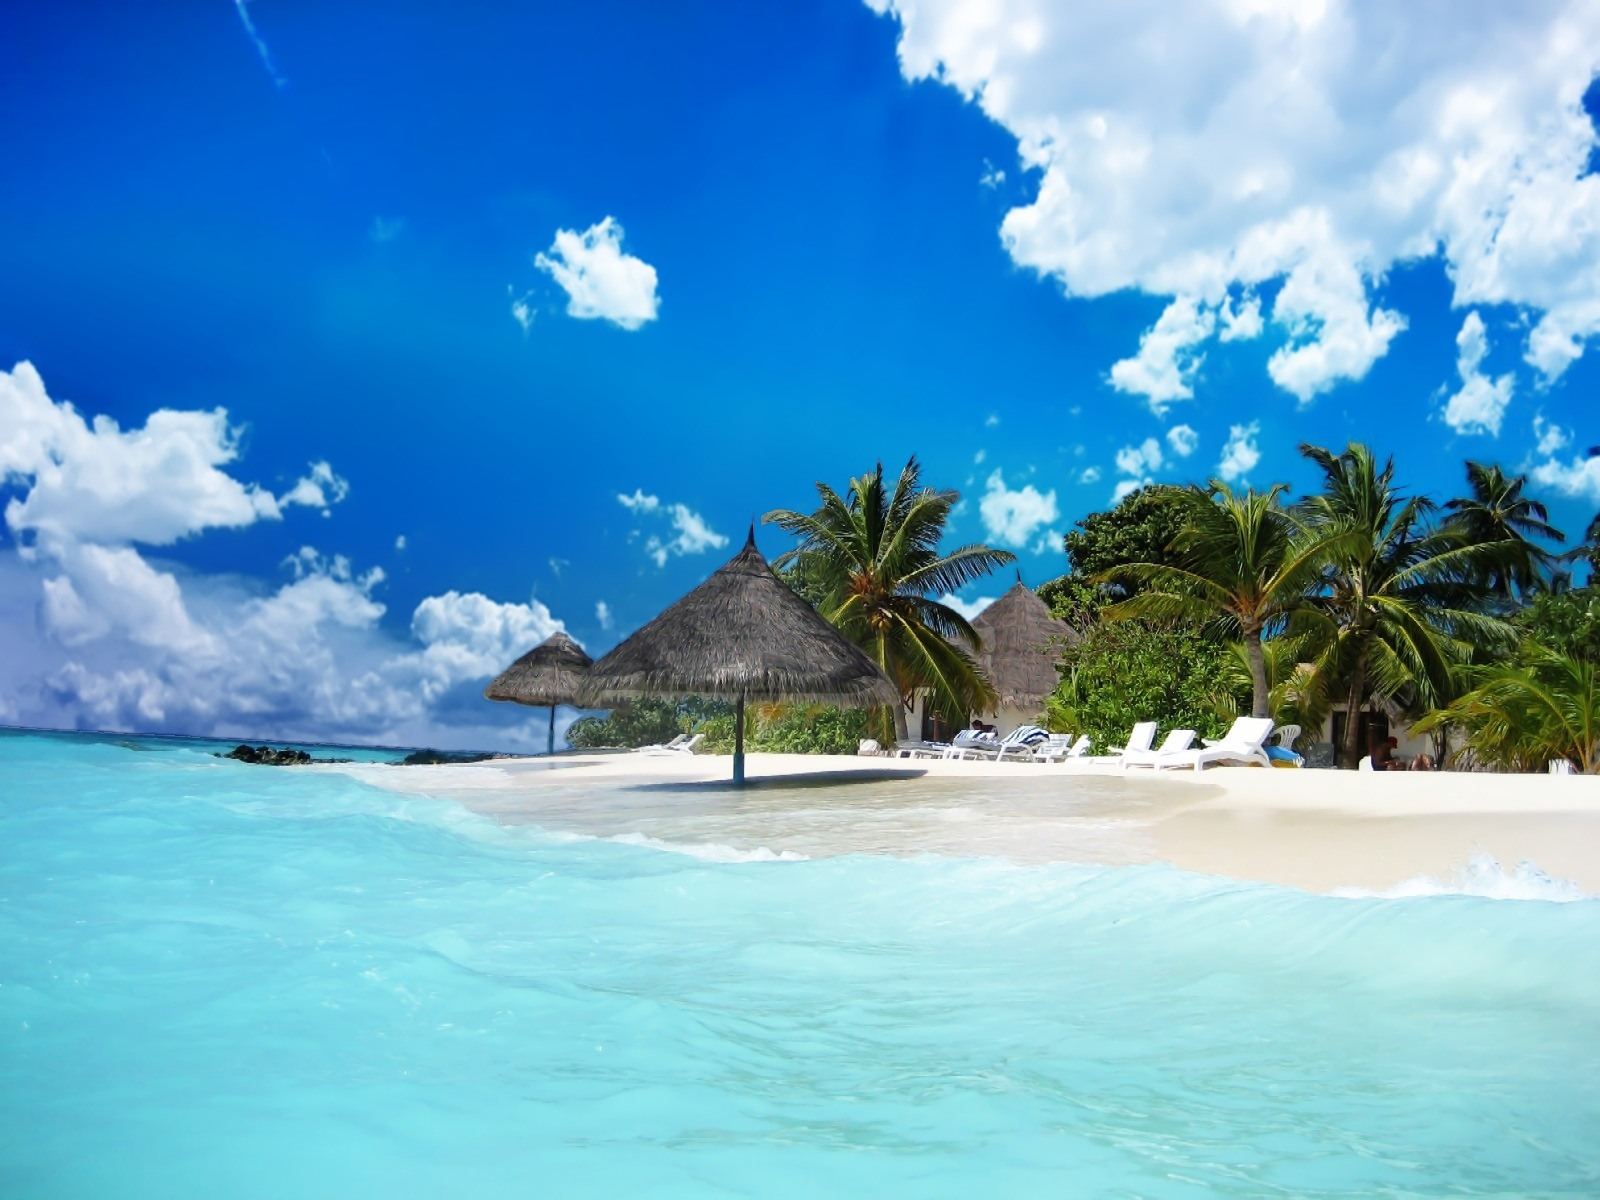 Online Wallpapers Shop: Beach Wallpaper